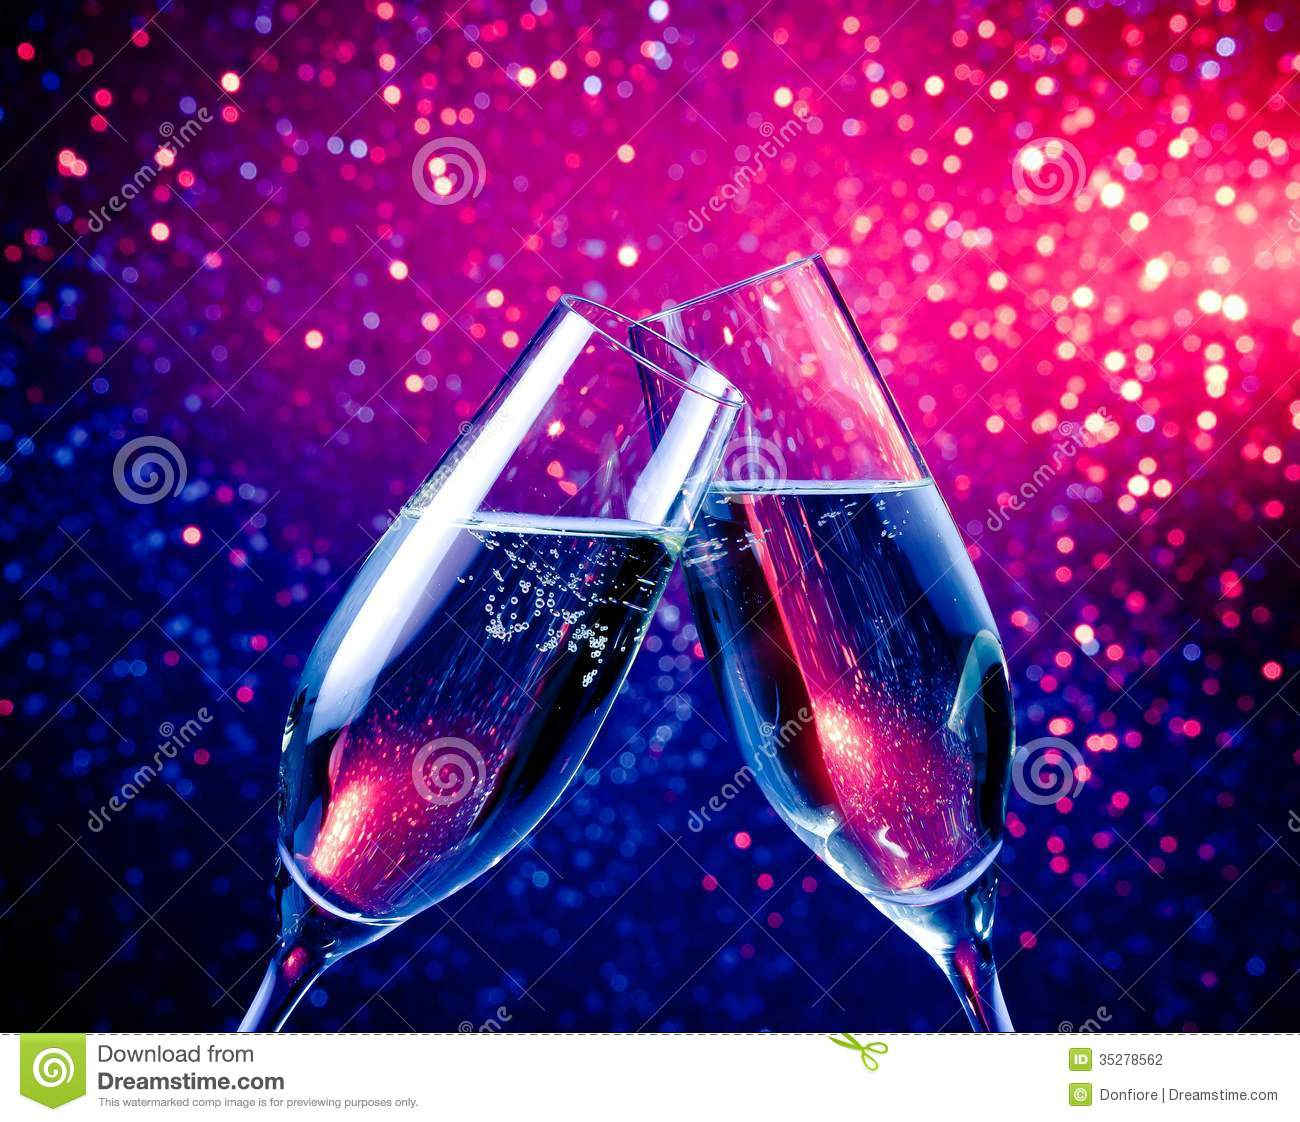 Champagne Flutes With Bubbles On Blue Tint Light Bokeh